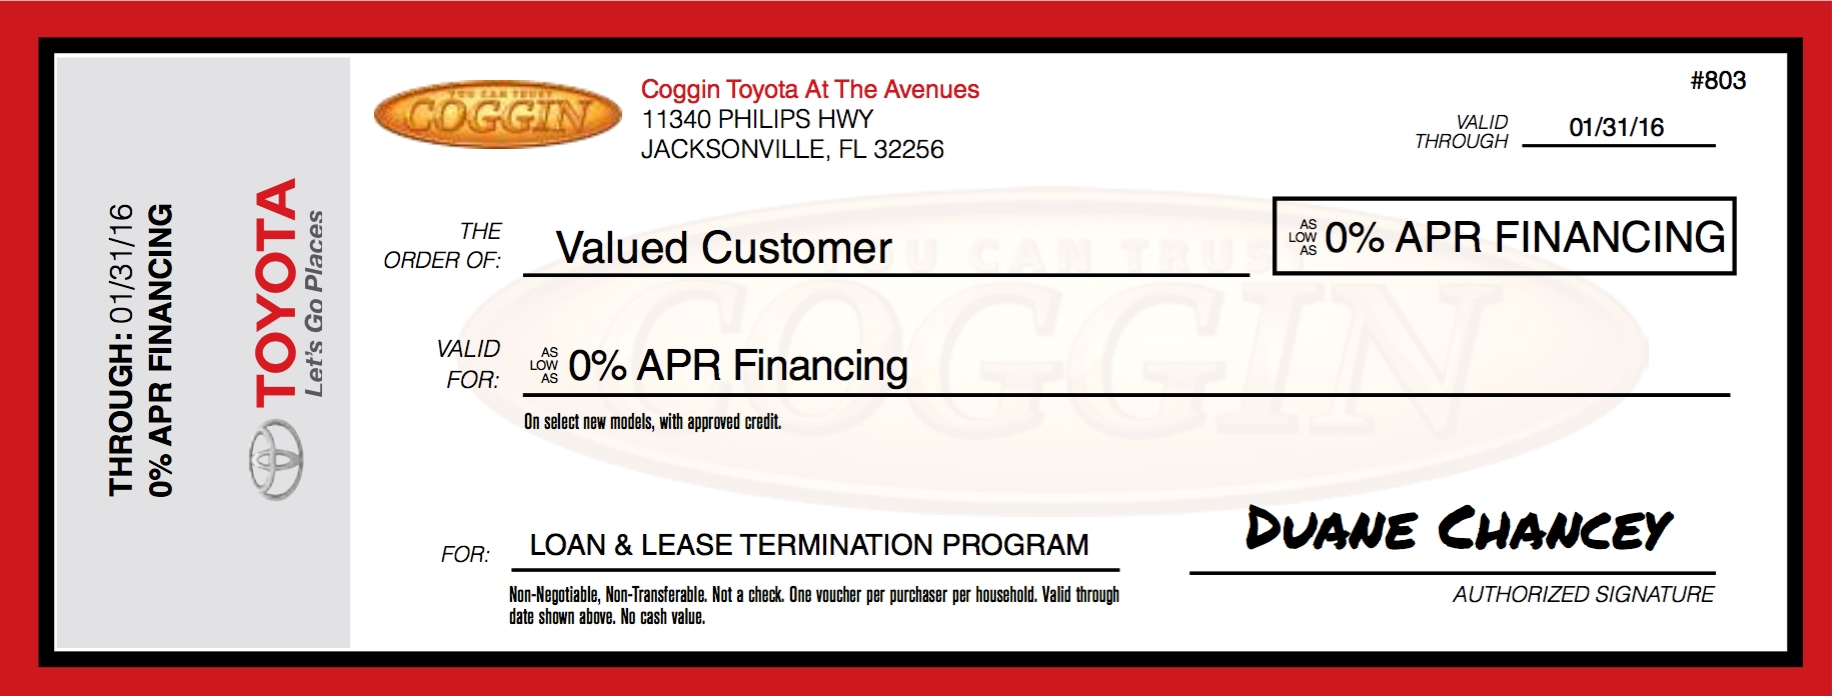 Loan and Lease Termination 0% Financing Voucher